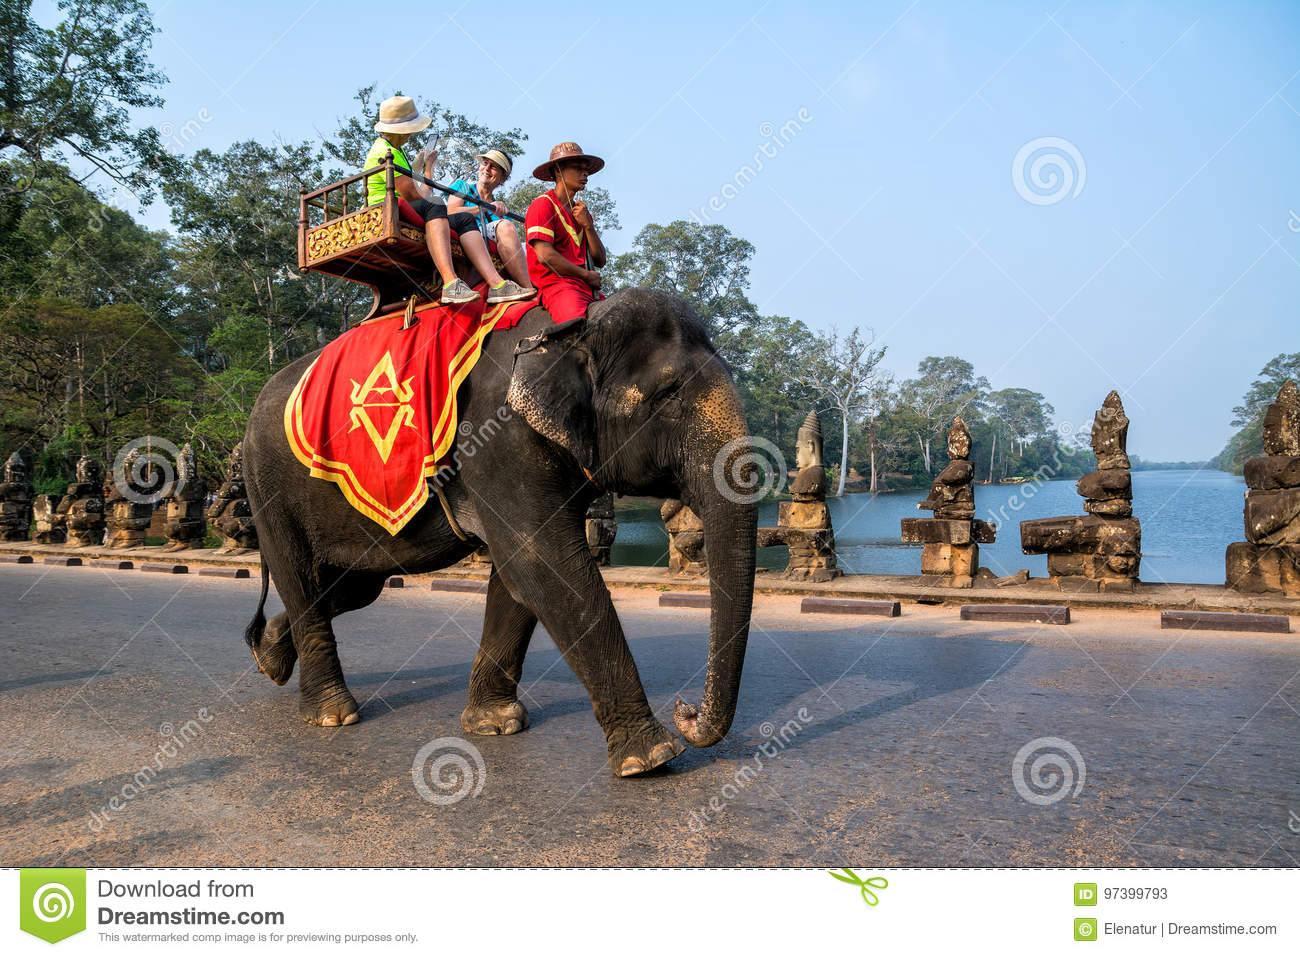 SIEM REAP, CAMBODIA - MARCH 8, 2017: An elephant carrying tourists over causeway near Gate of Angkor Thom on March 8, 2017 in